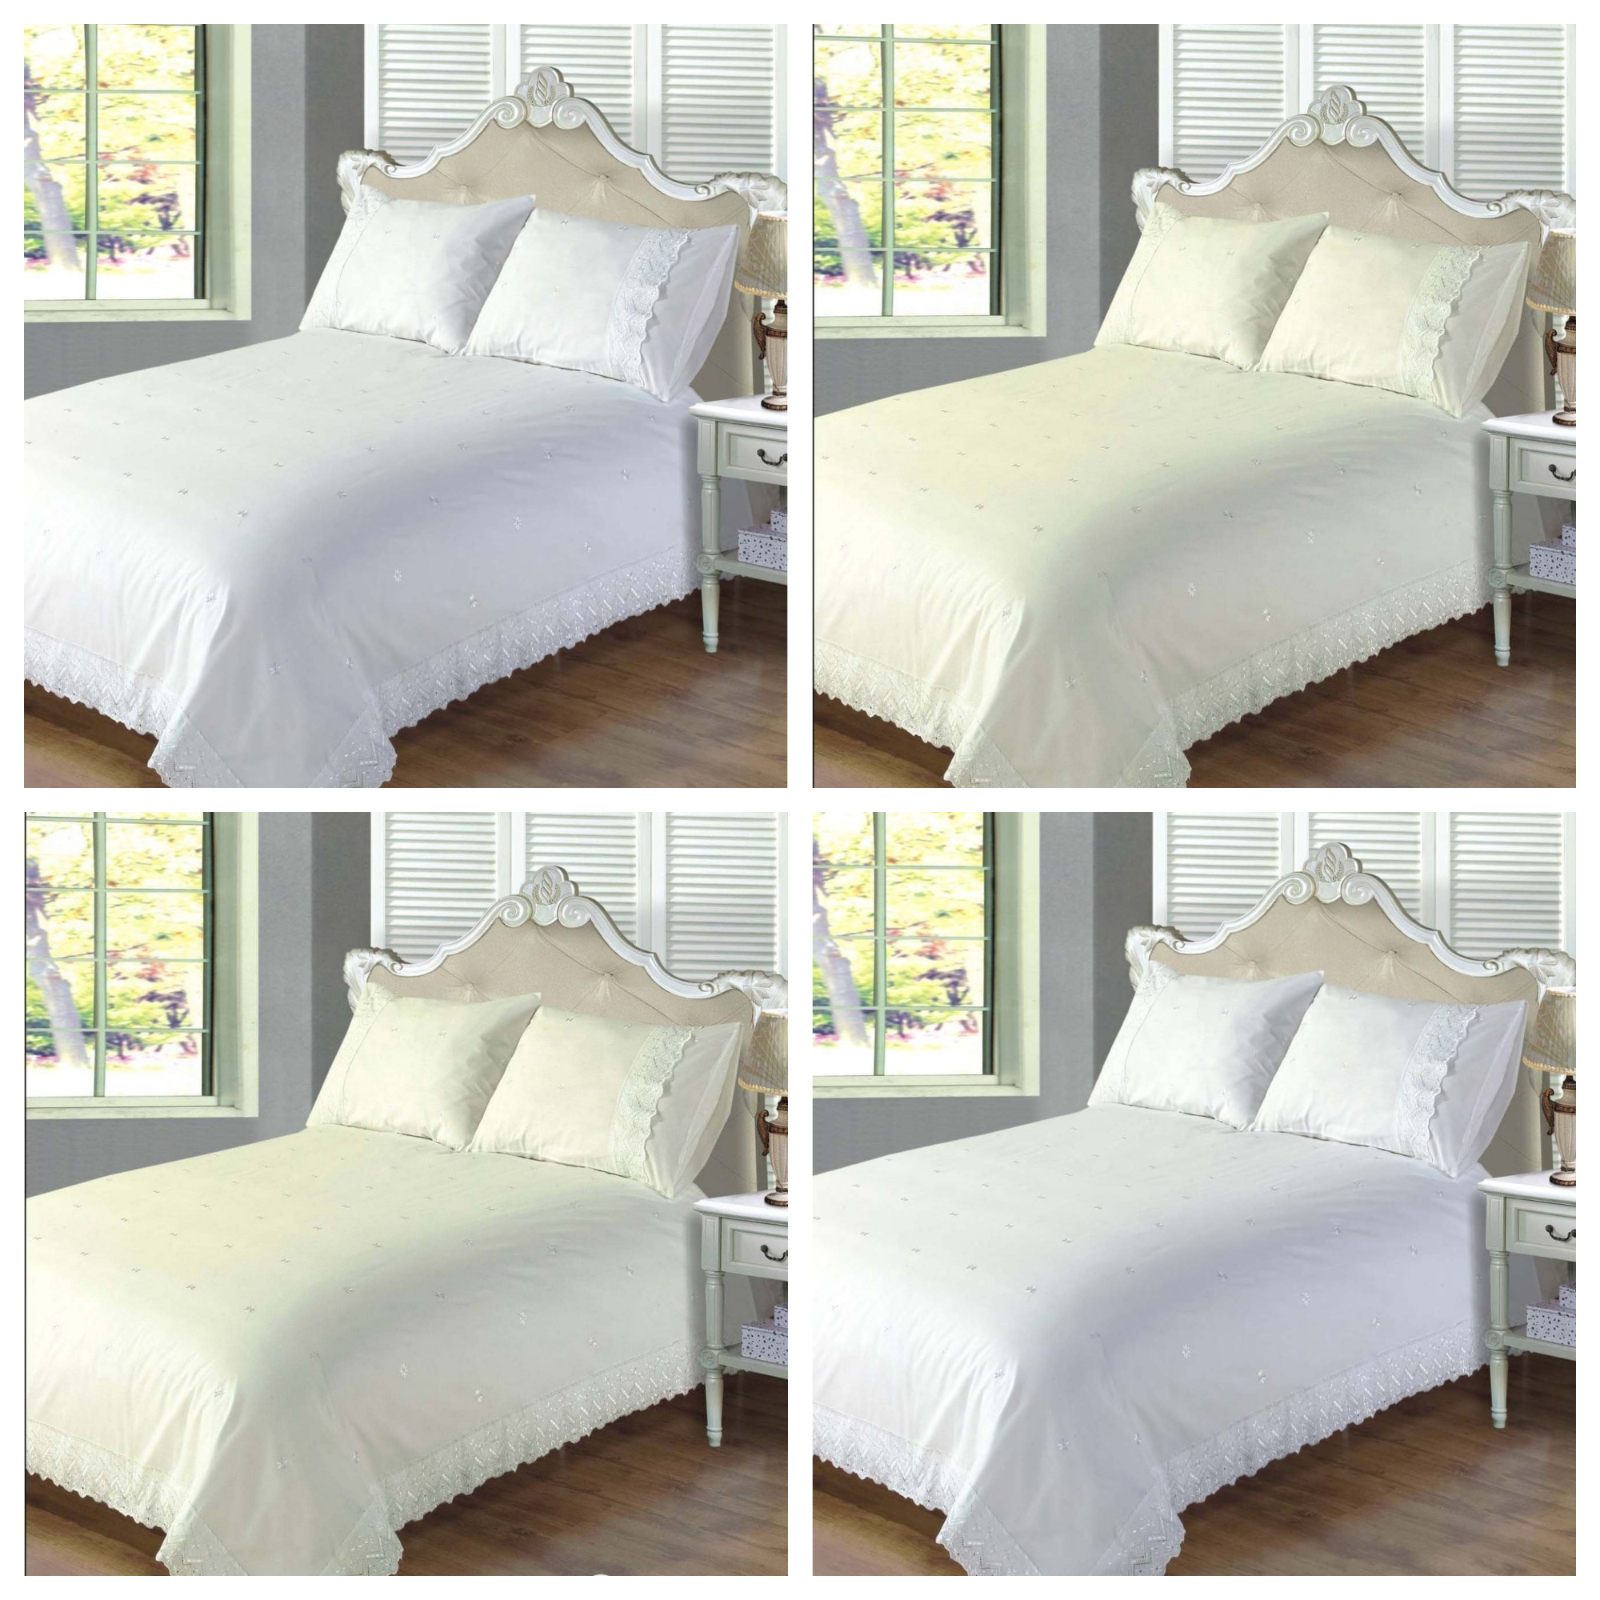 VICTORIA Broderie Anglaise Duvet Covers Bedding Heaven® Embroidered